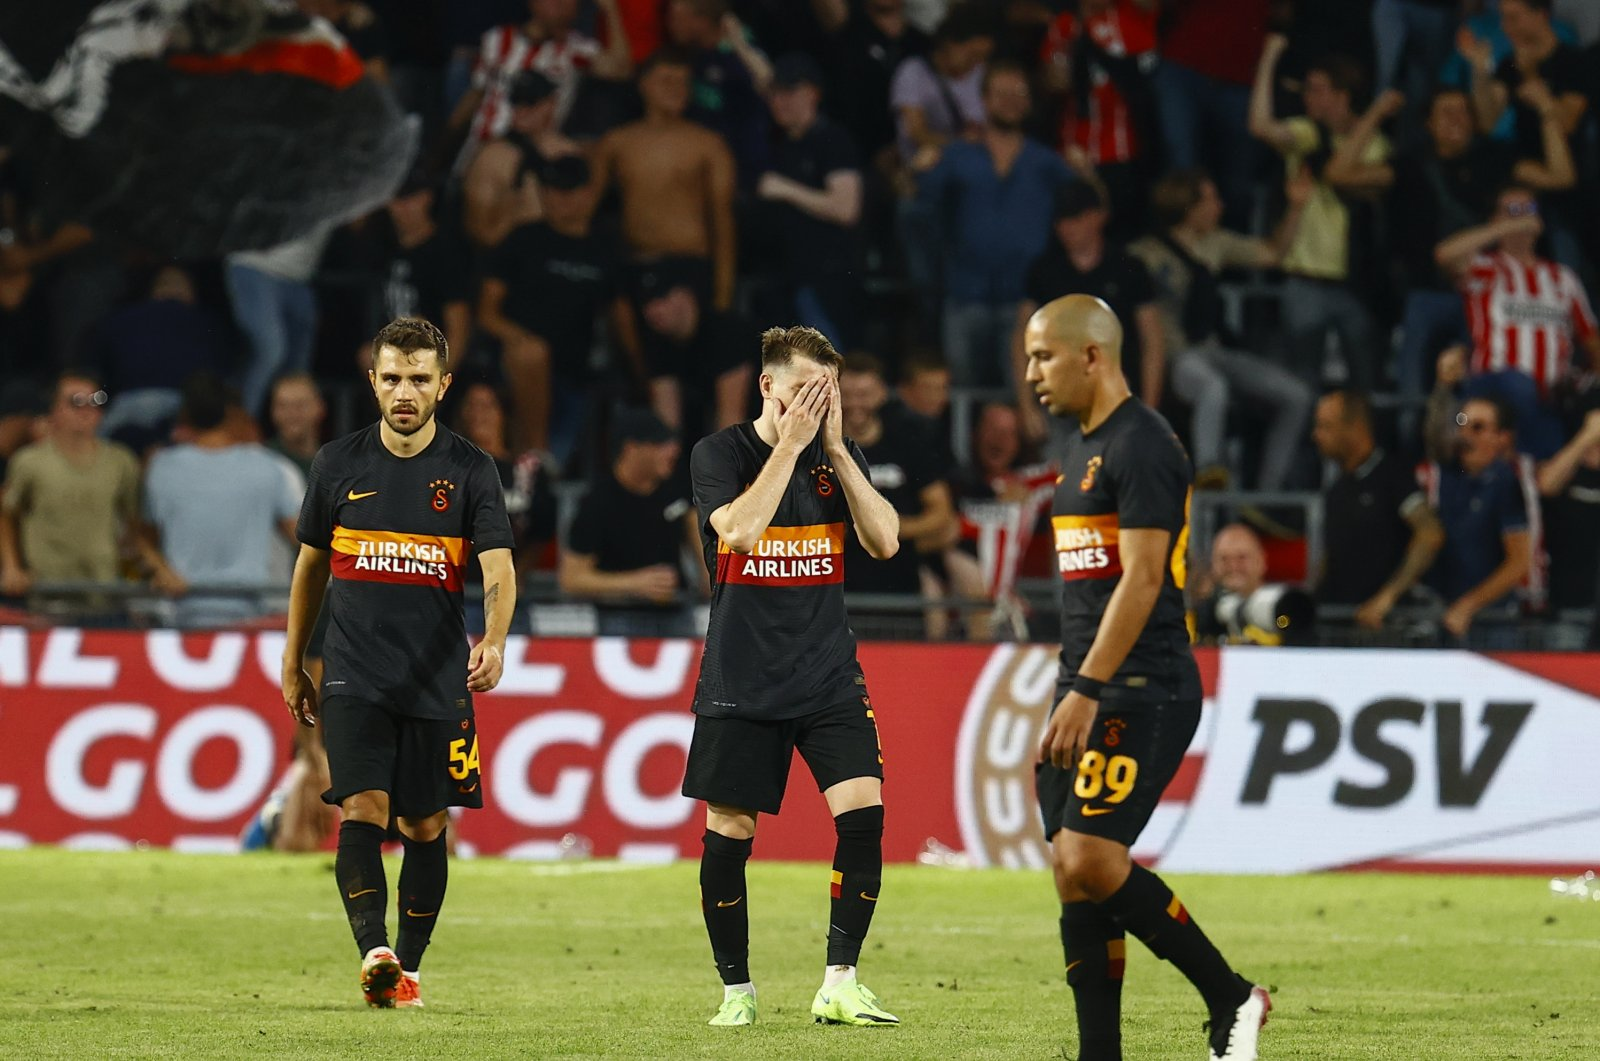 Galatasaray players look dejected after a 5-1 defeat against PSV Eindhoven in a UEFA Champions League match, in Eindhoven, Netherlands, July 21, 2021. (AA Photo)